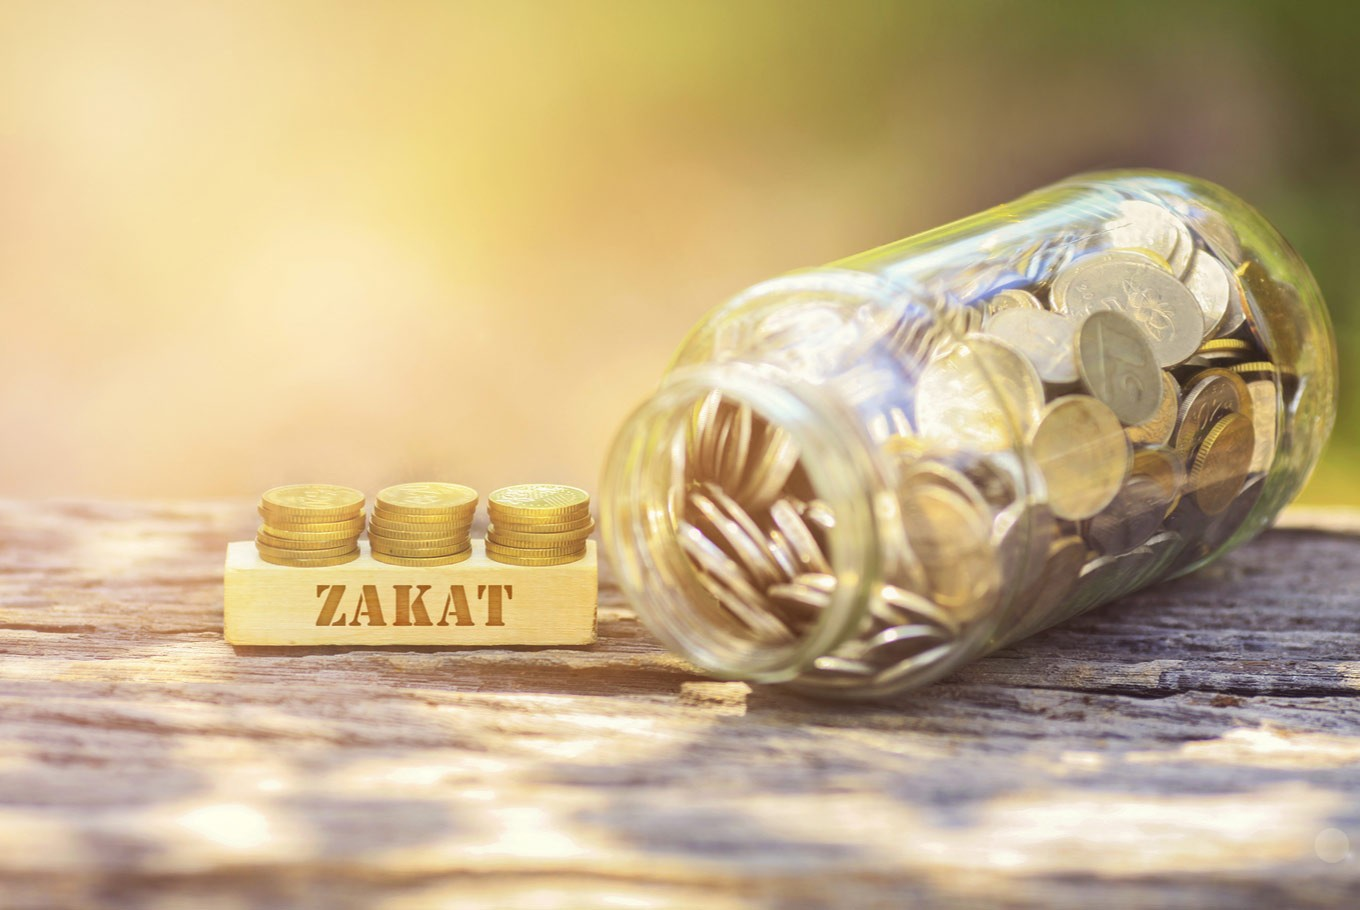 Nationalism and the obligation to pay zakat